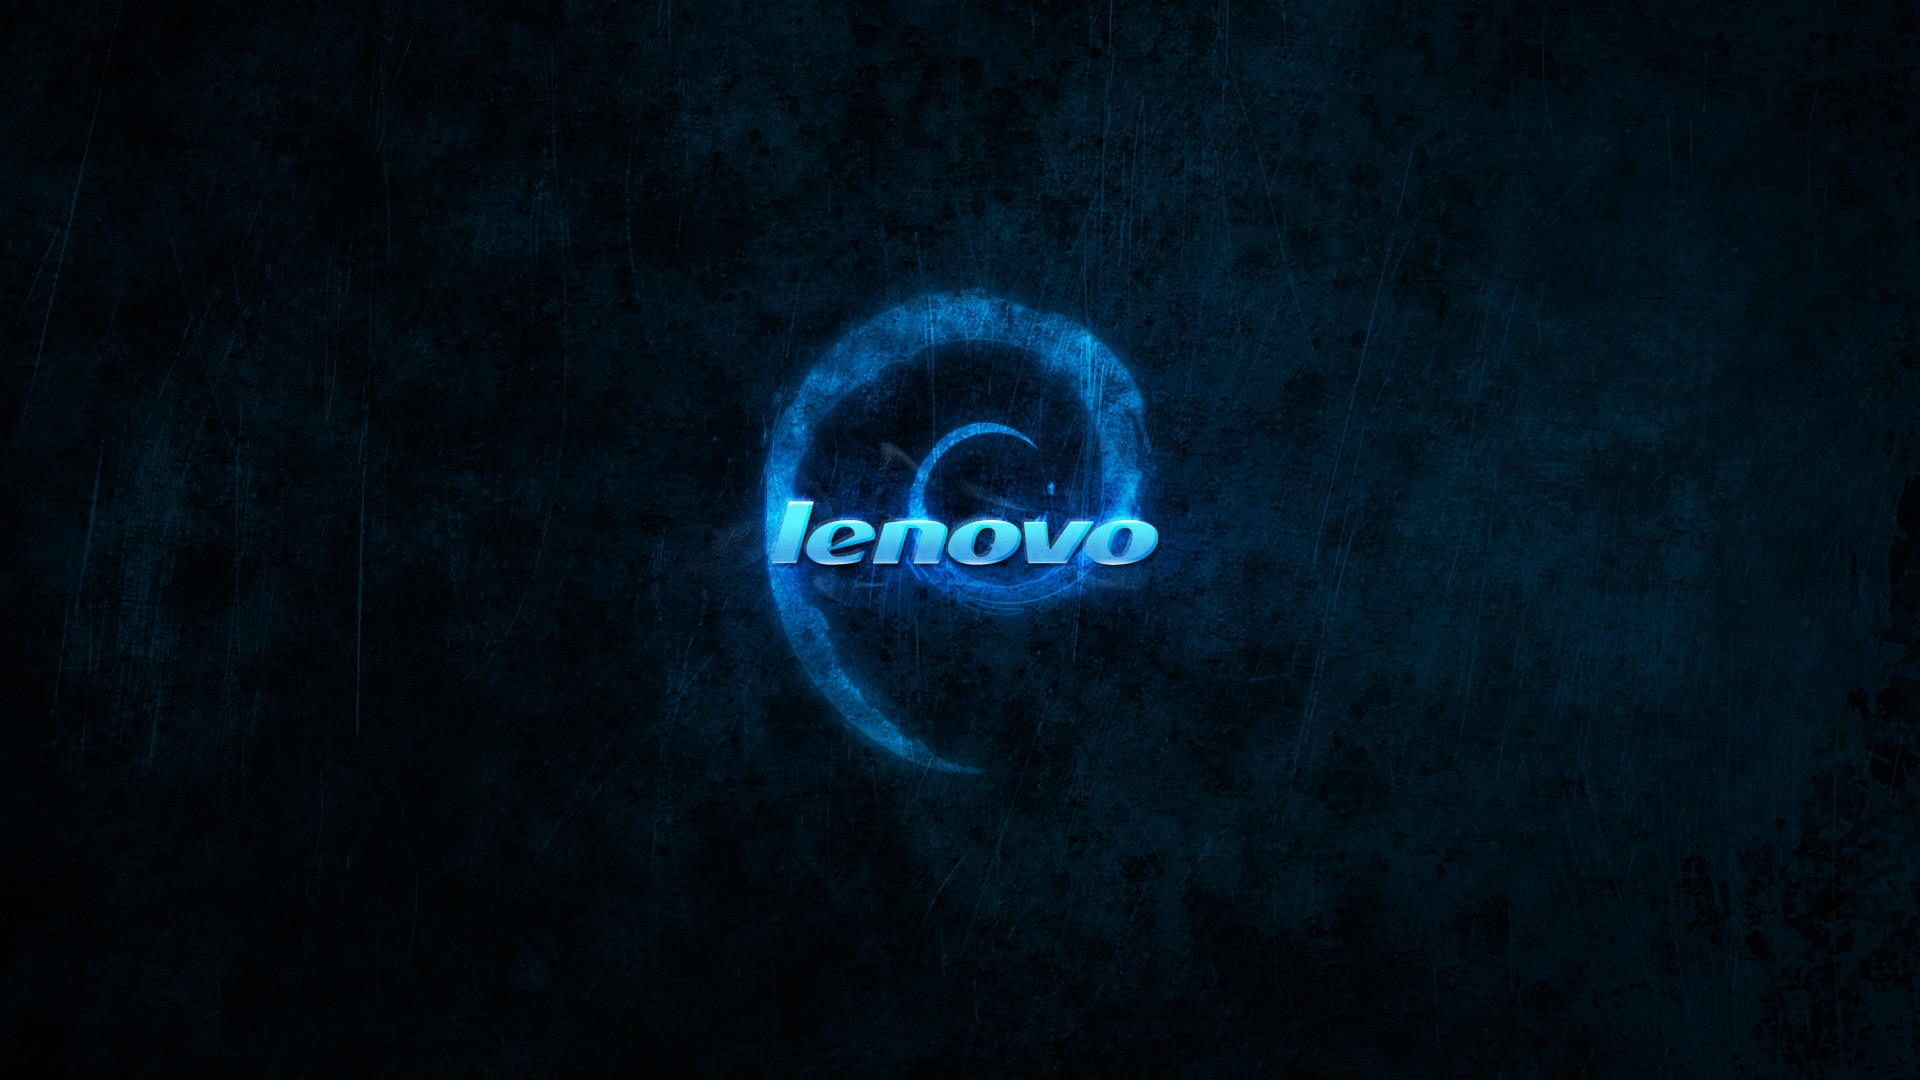 Debian Lenovo HD1080 wallpaper by malkowitch on DeviantArt